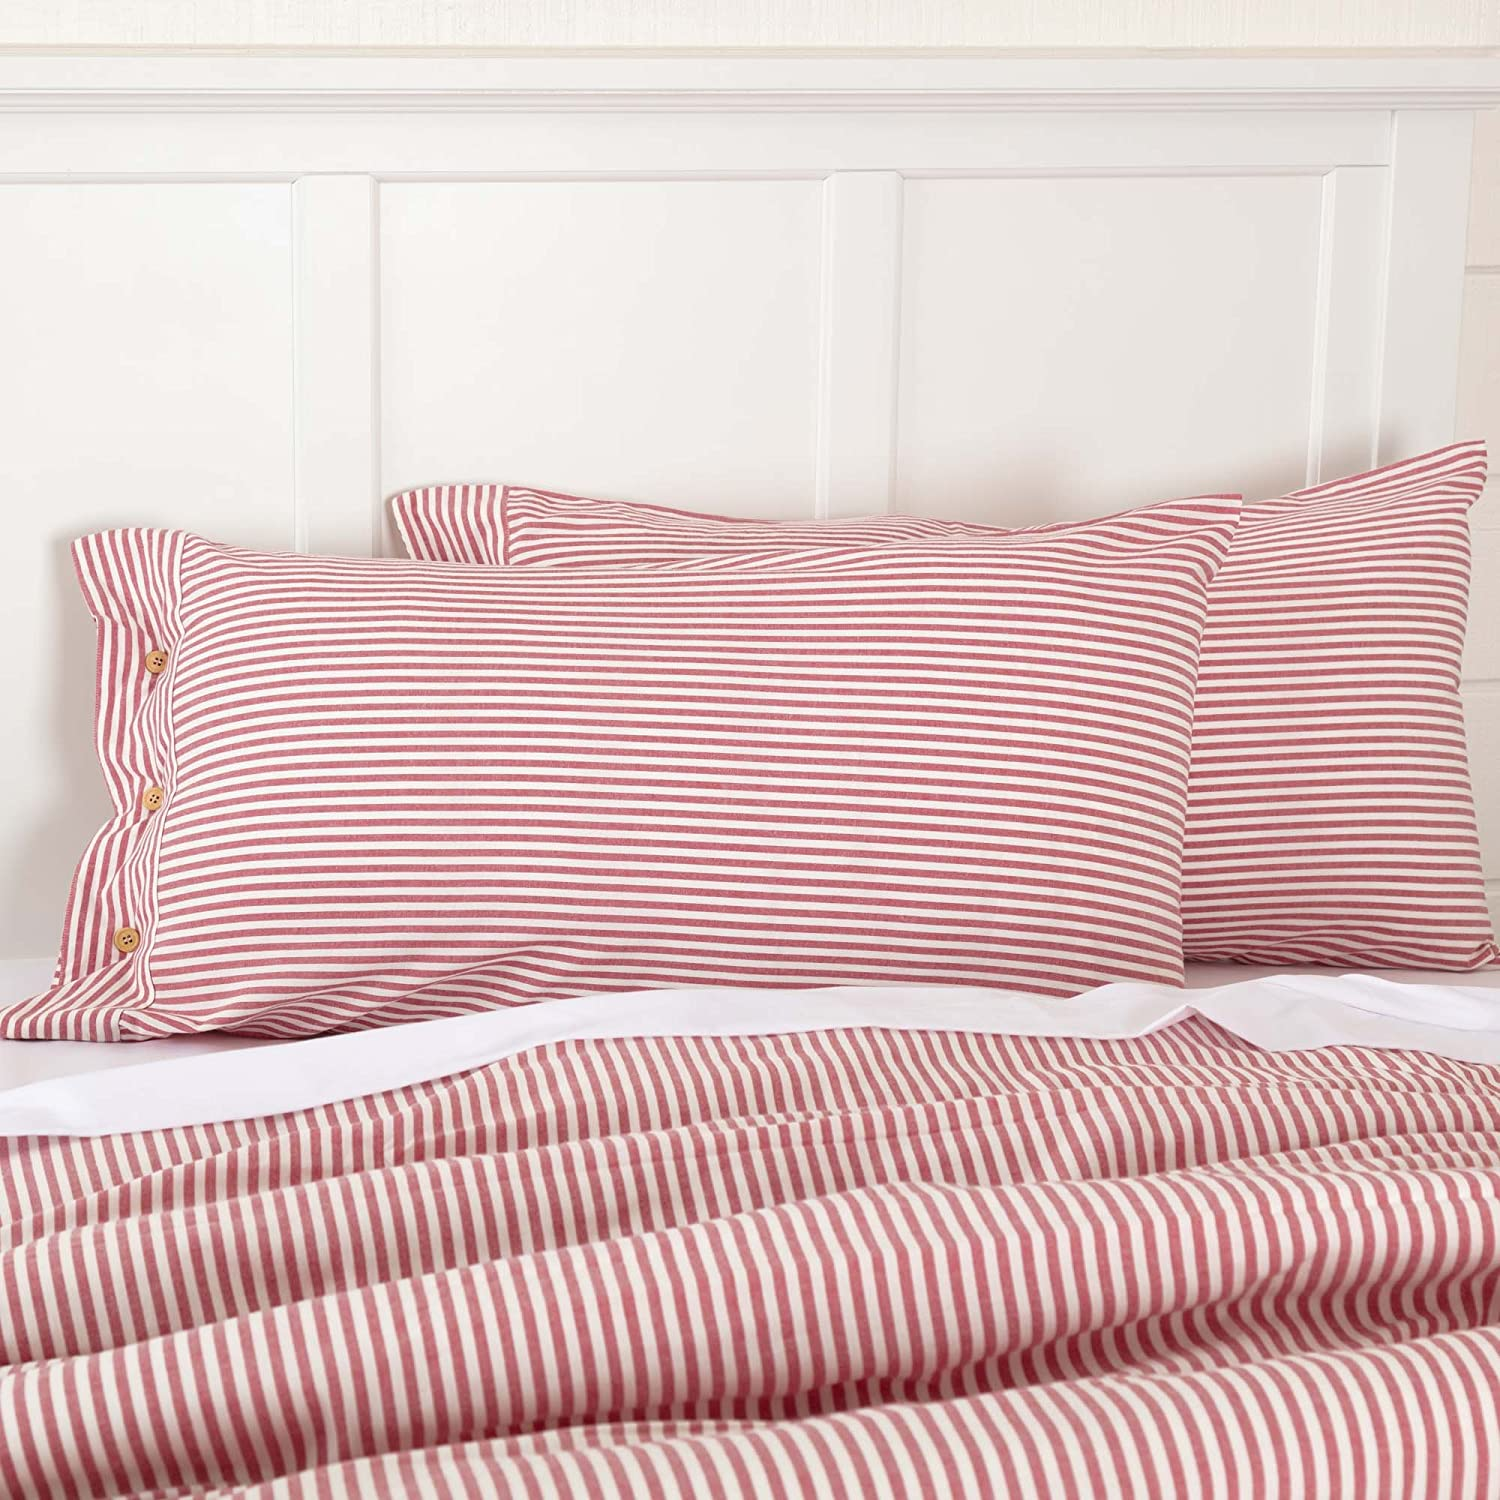 Piper Classics Farmhouse Ticking Stripe Red Queen Bed Skirt, 60